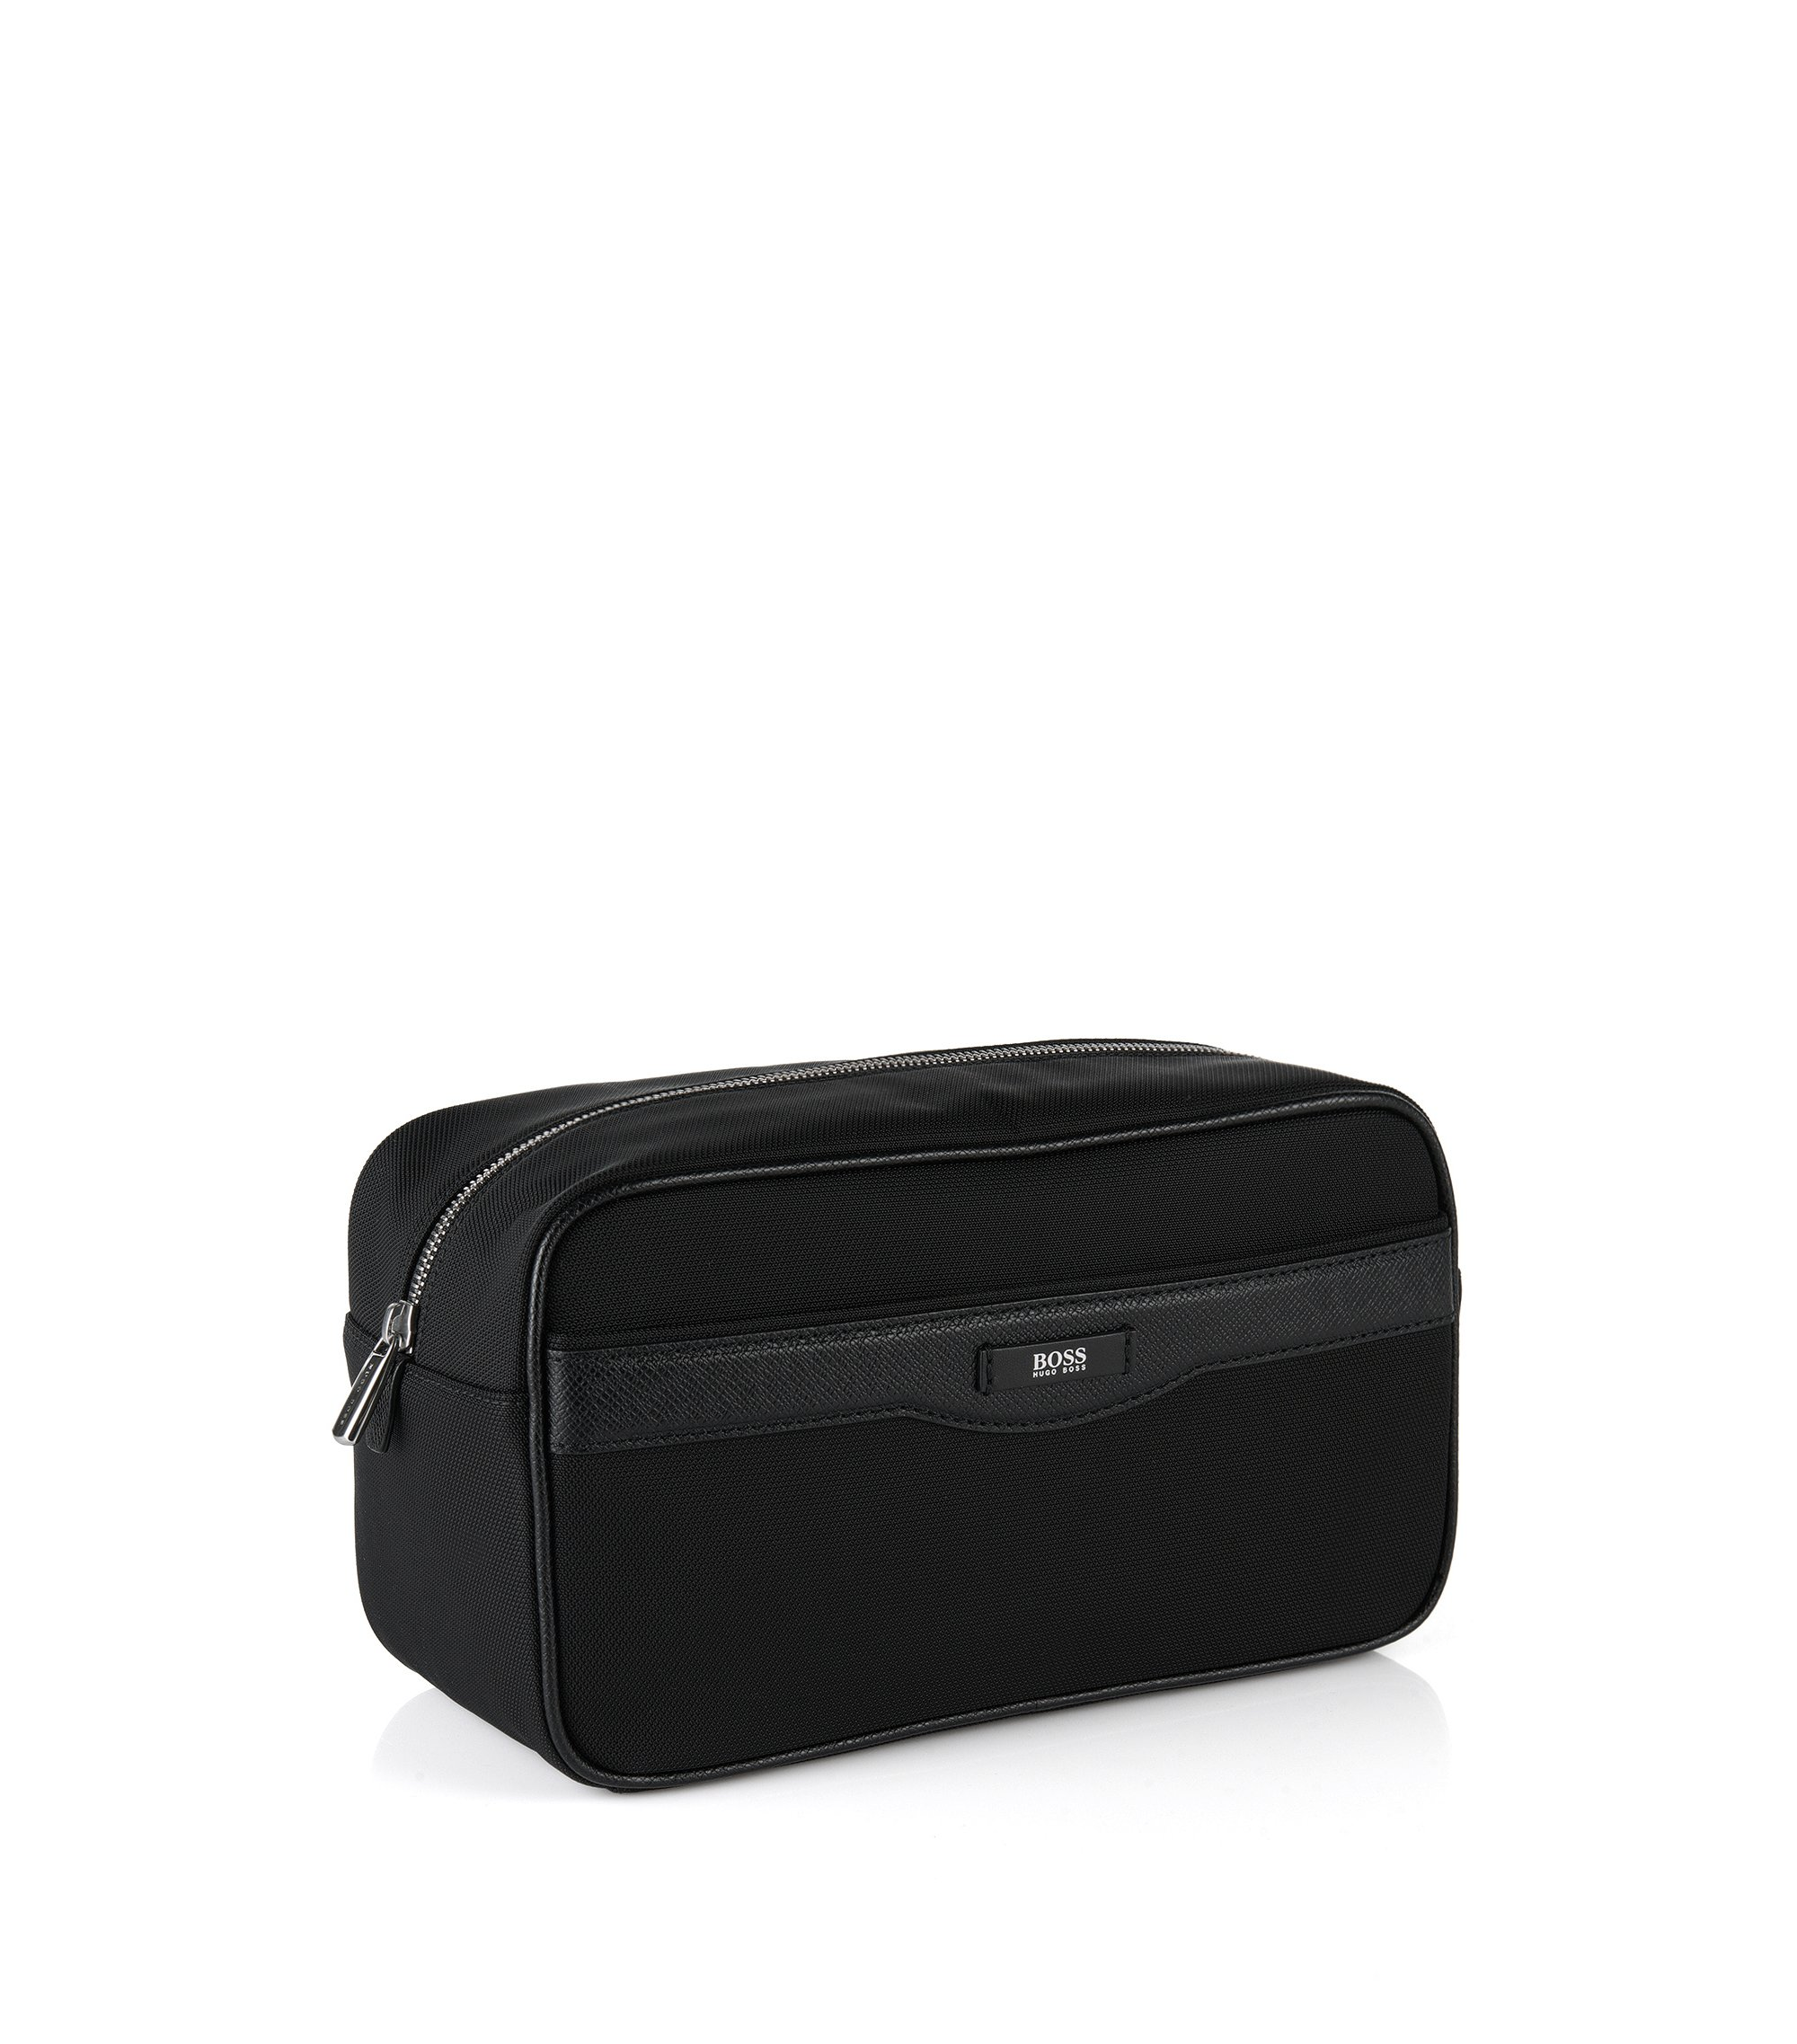 Trousse de toilette avec garnitures en cuir issue de la Signature Collection, Noir